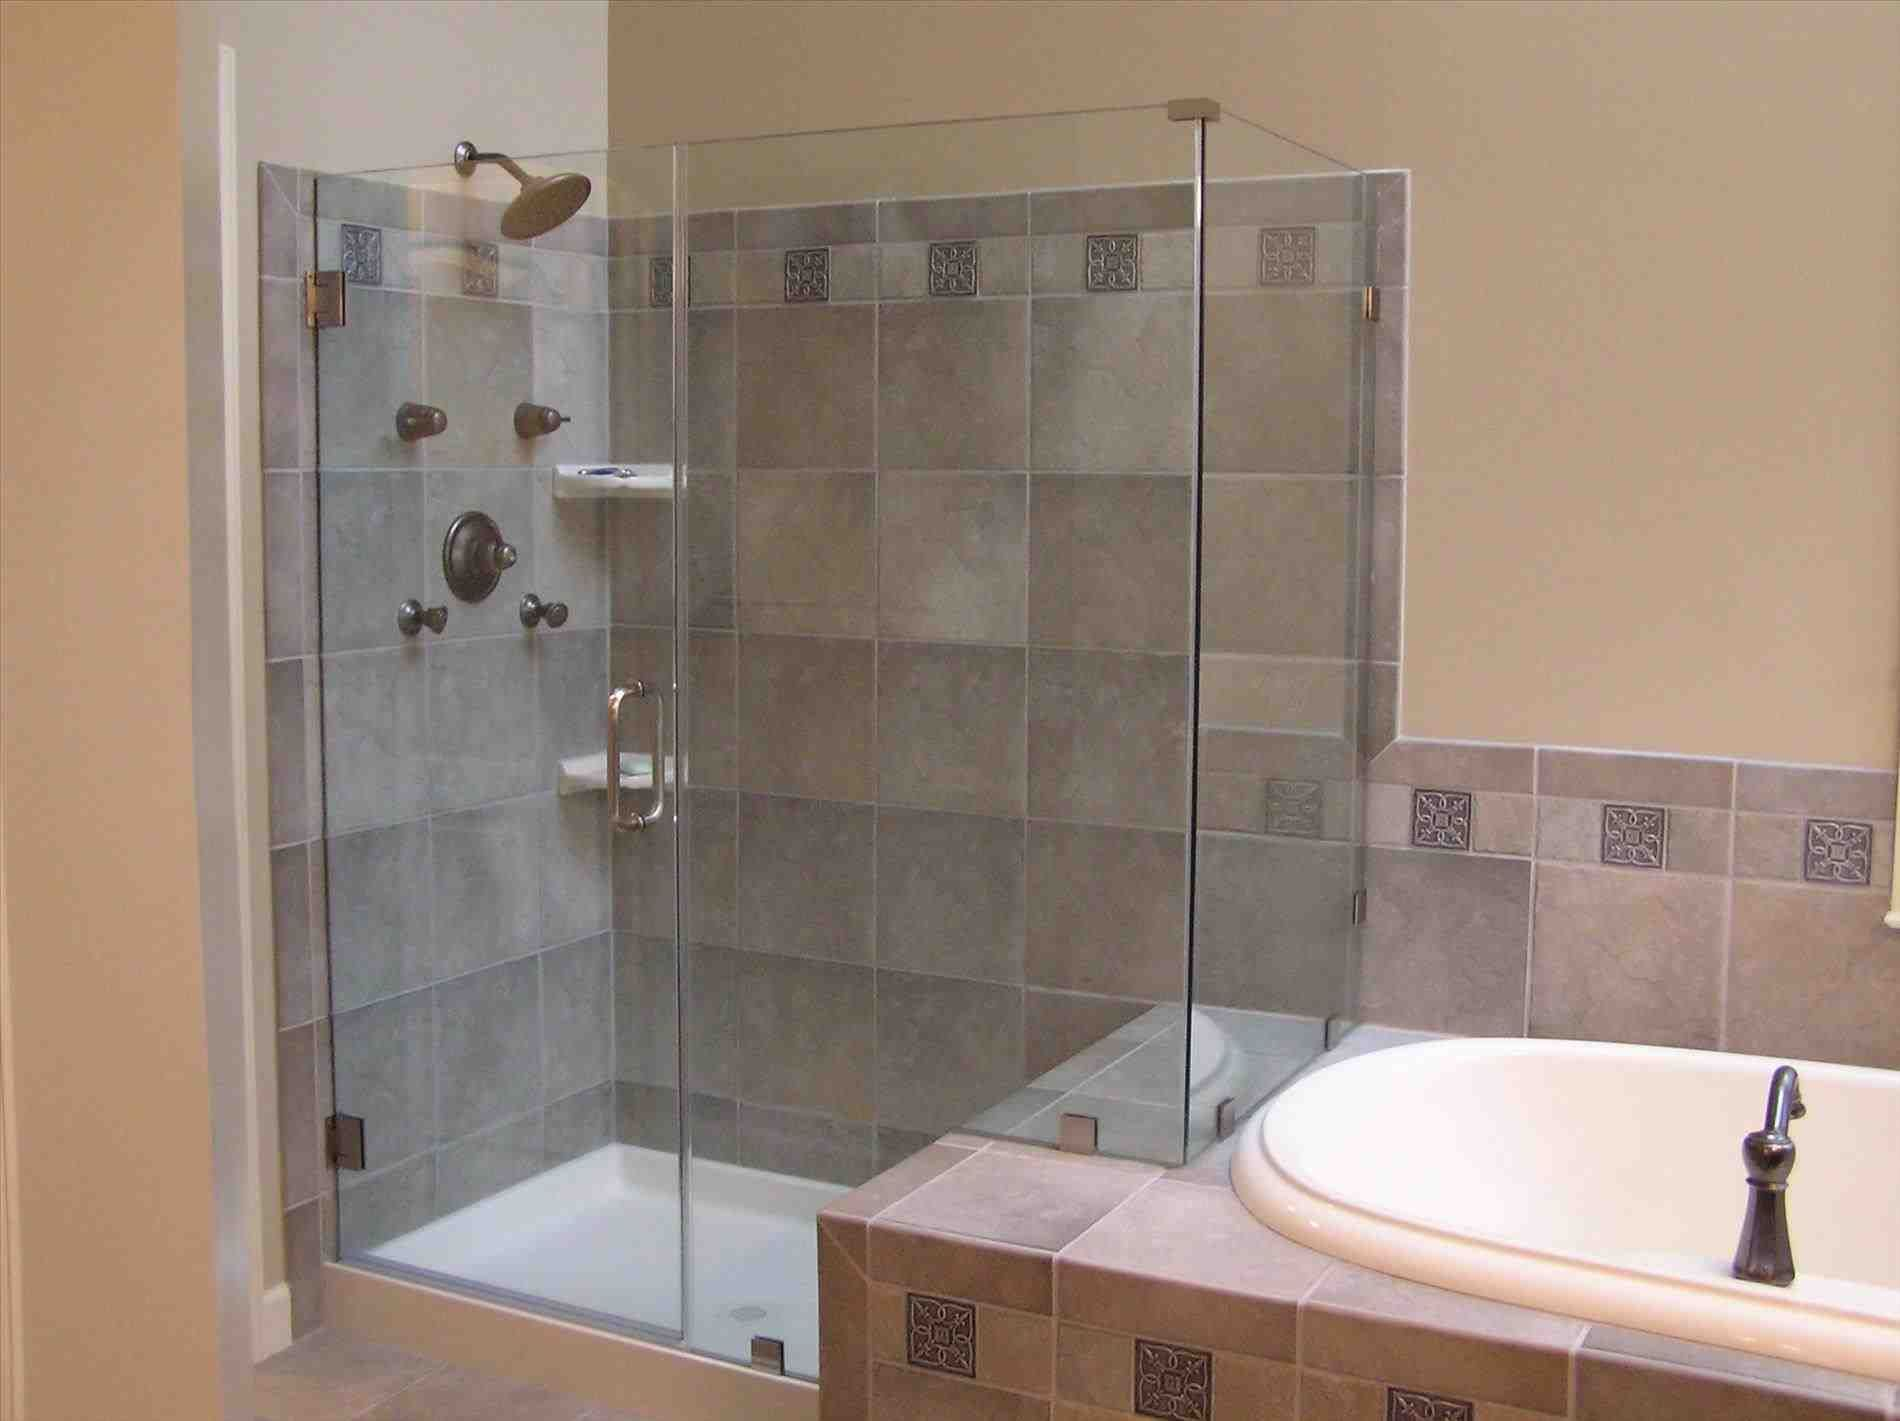 This bath shower combo small bathroom - impressive square baths ...